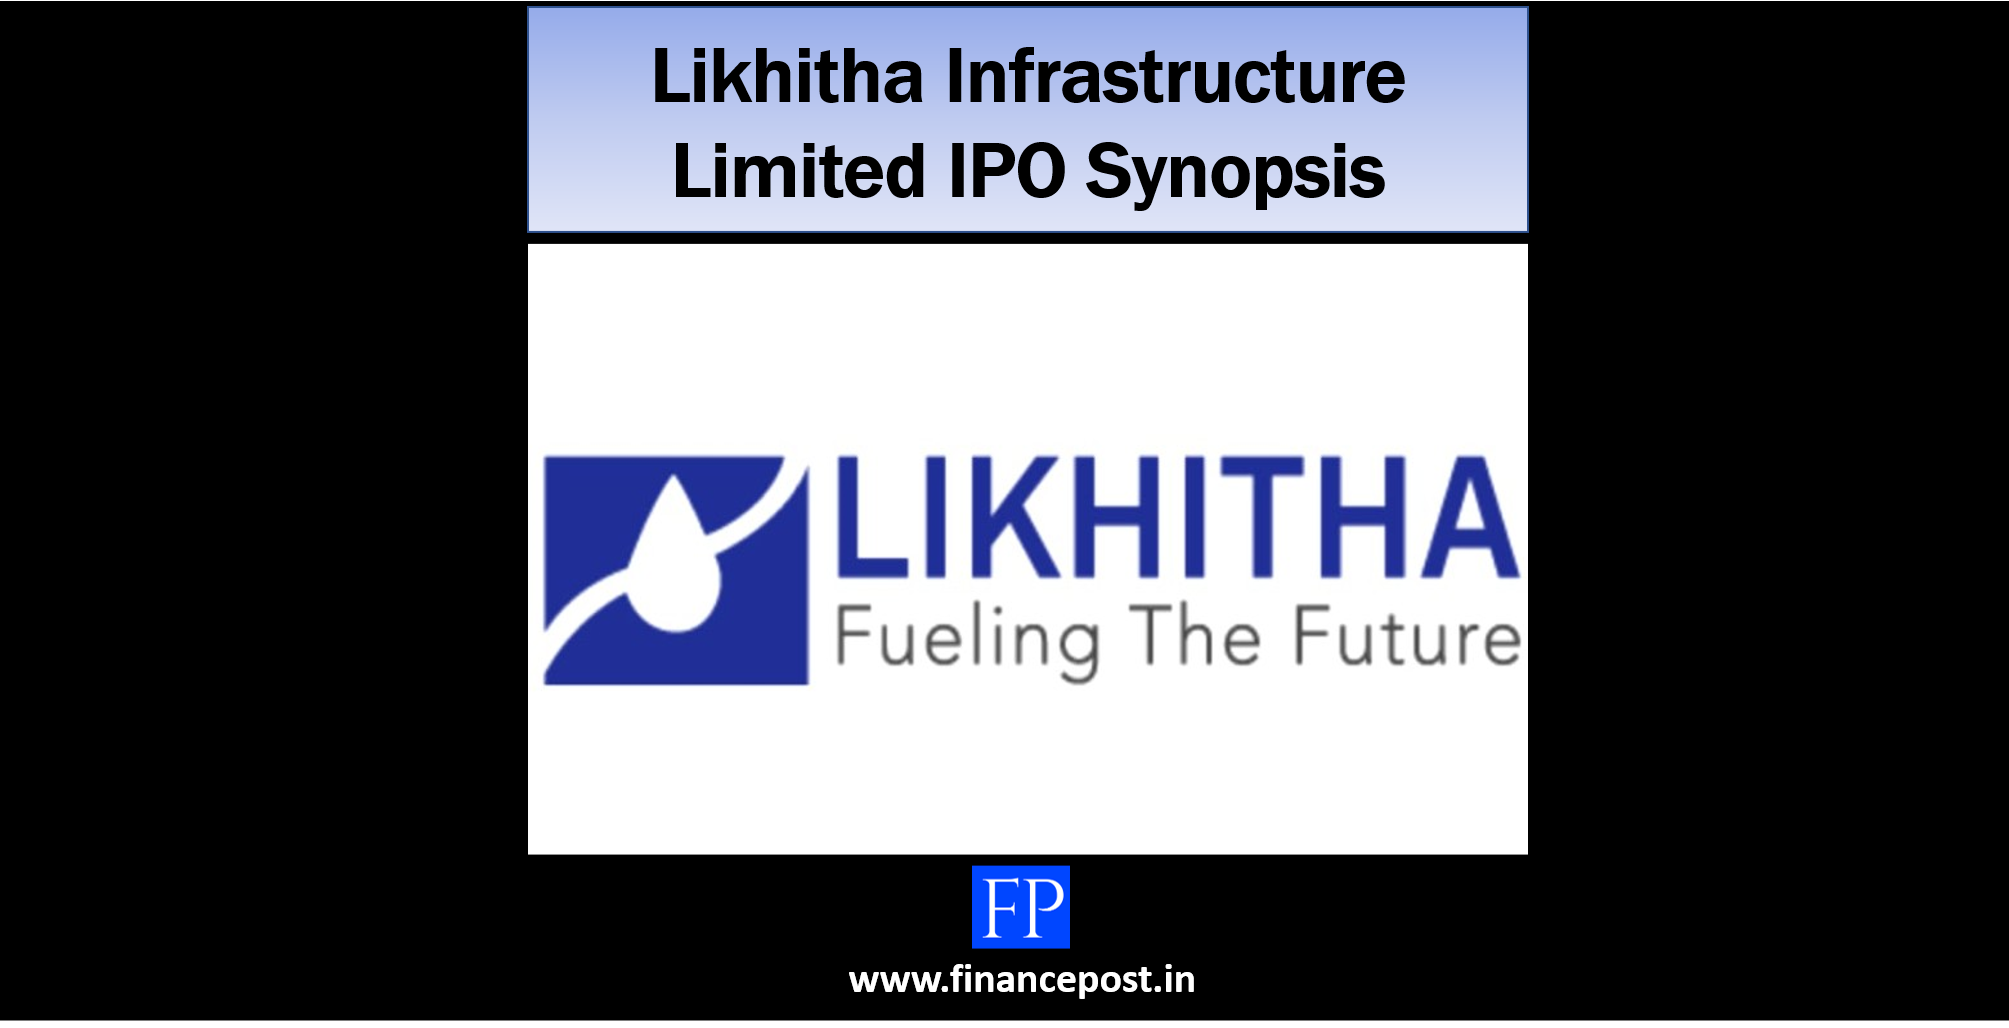 Likhitha Infrastructure Limited IPO Synopsis